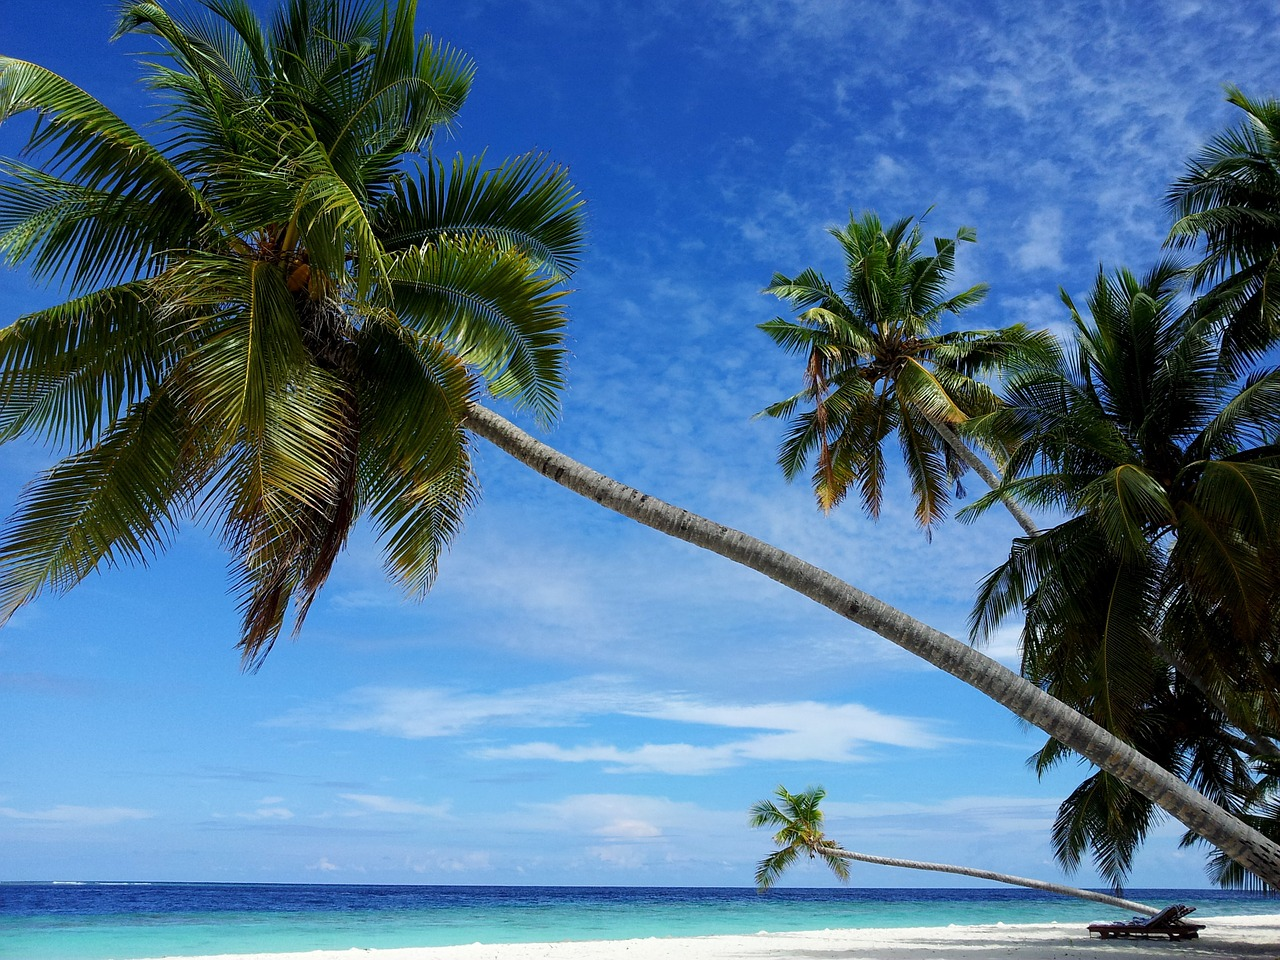 Palm Trees on Maldives Island